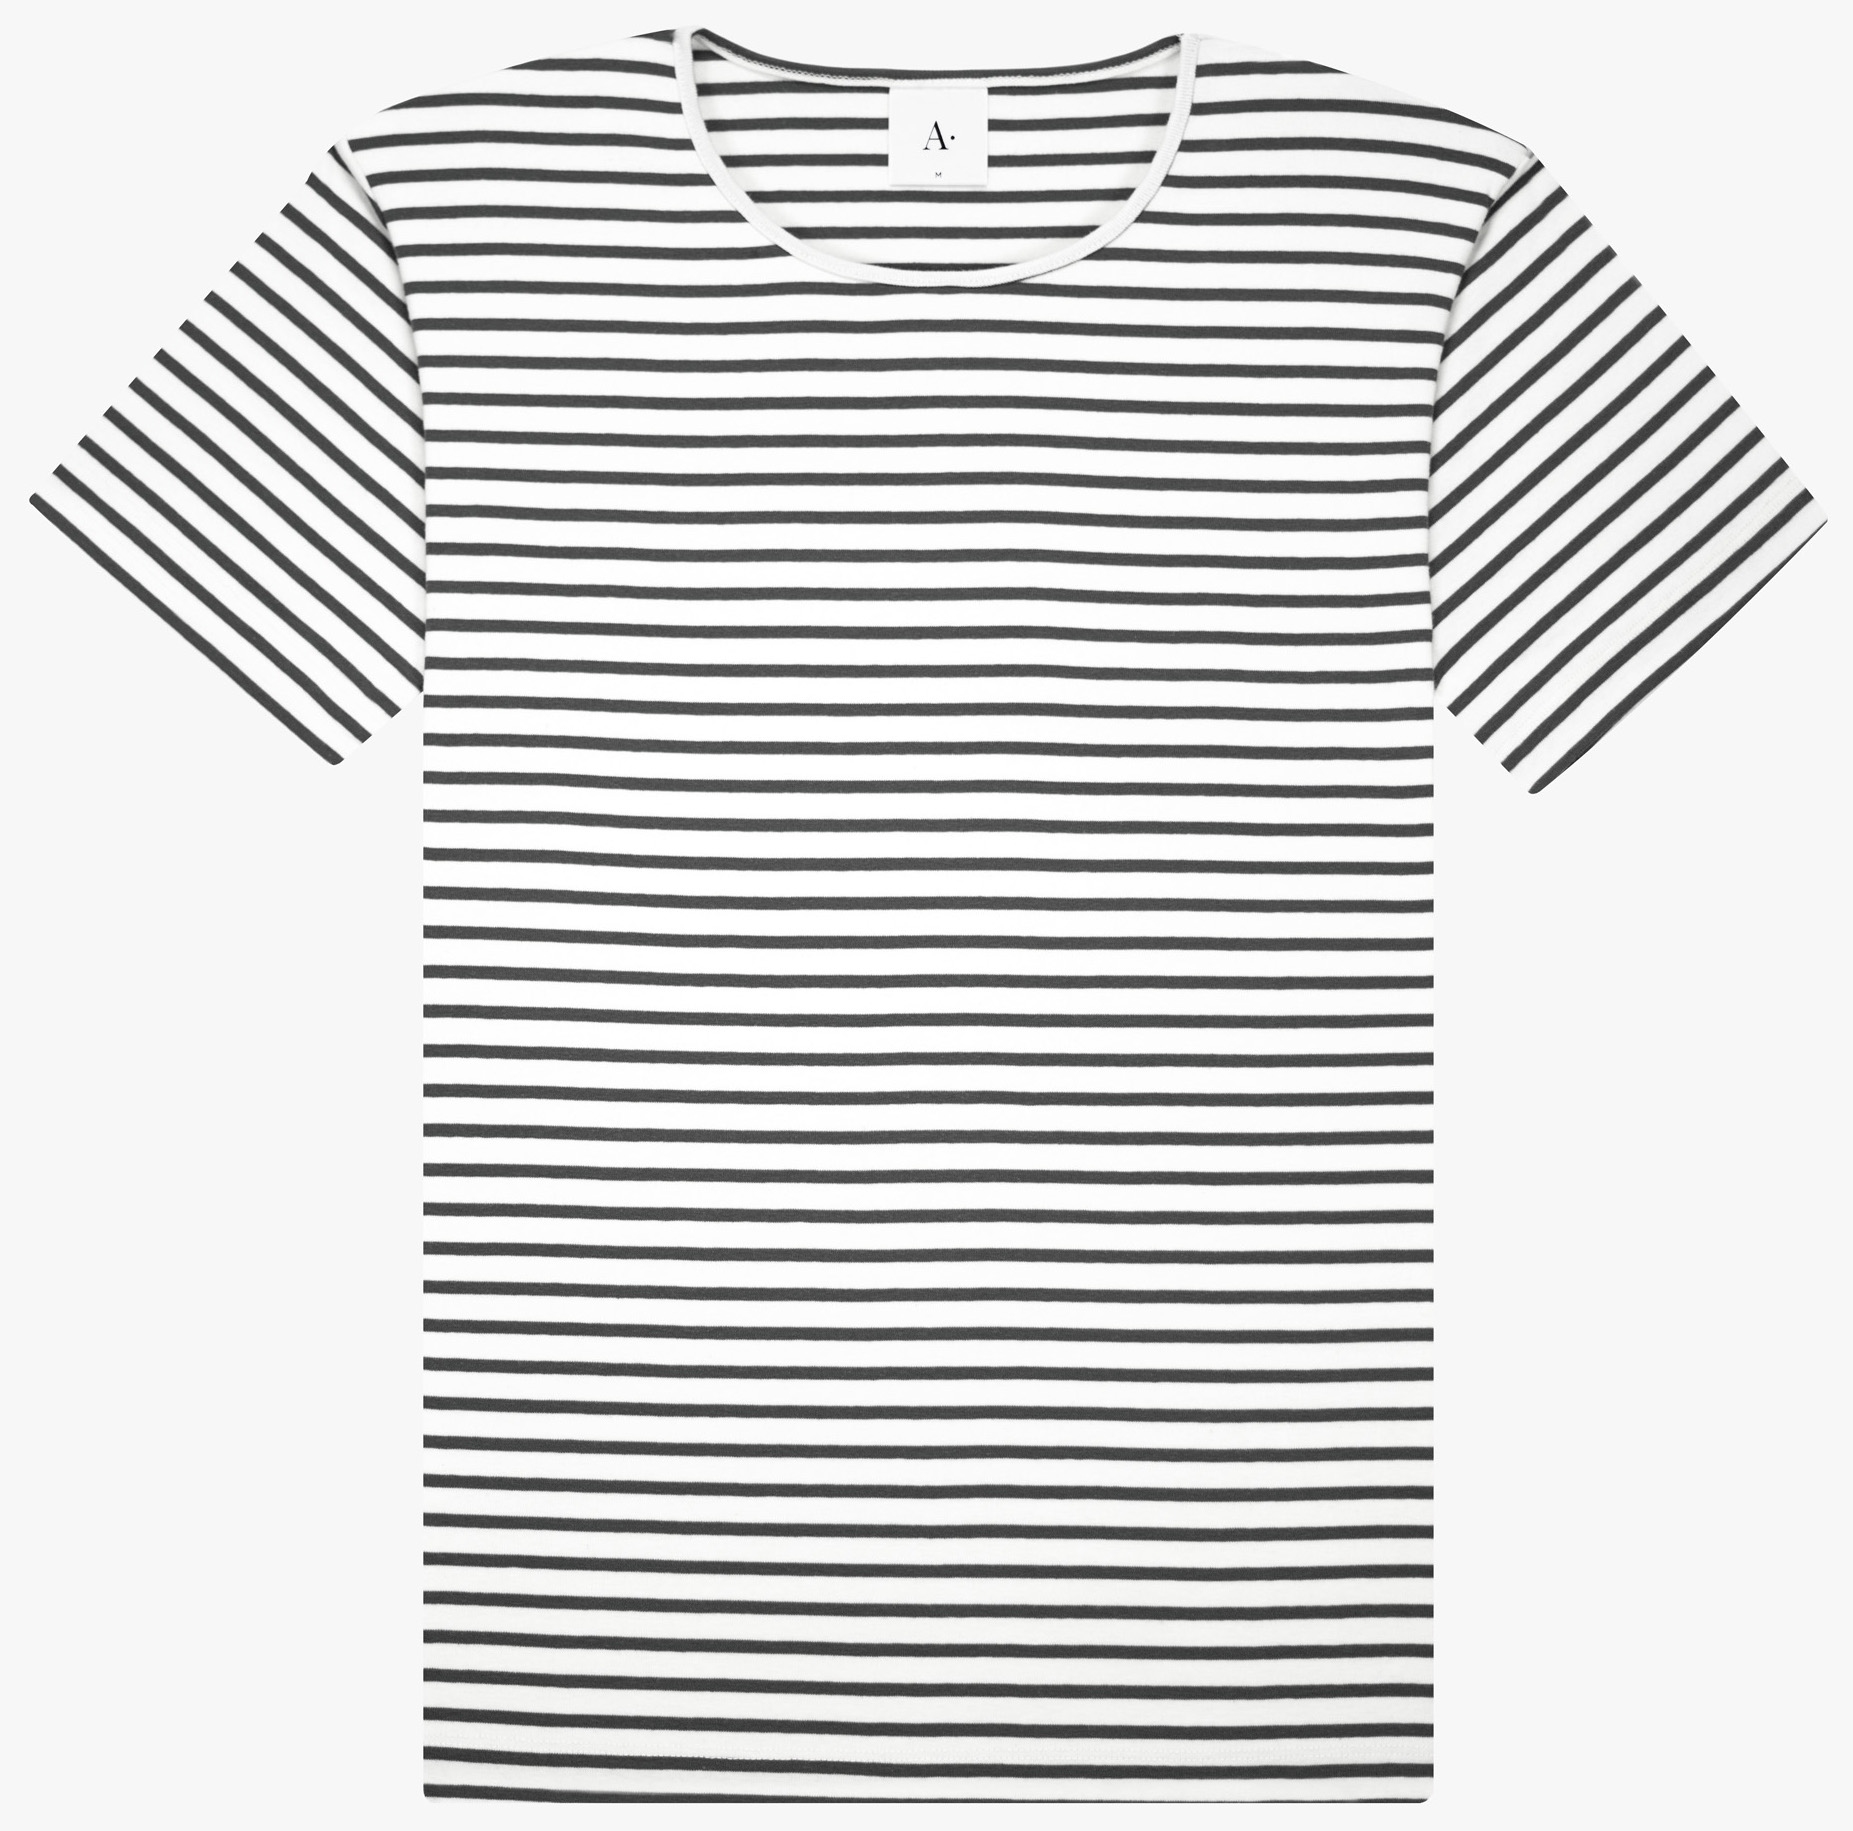 Nautical stripe matching white base cotton Organic